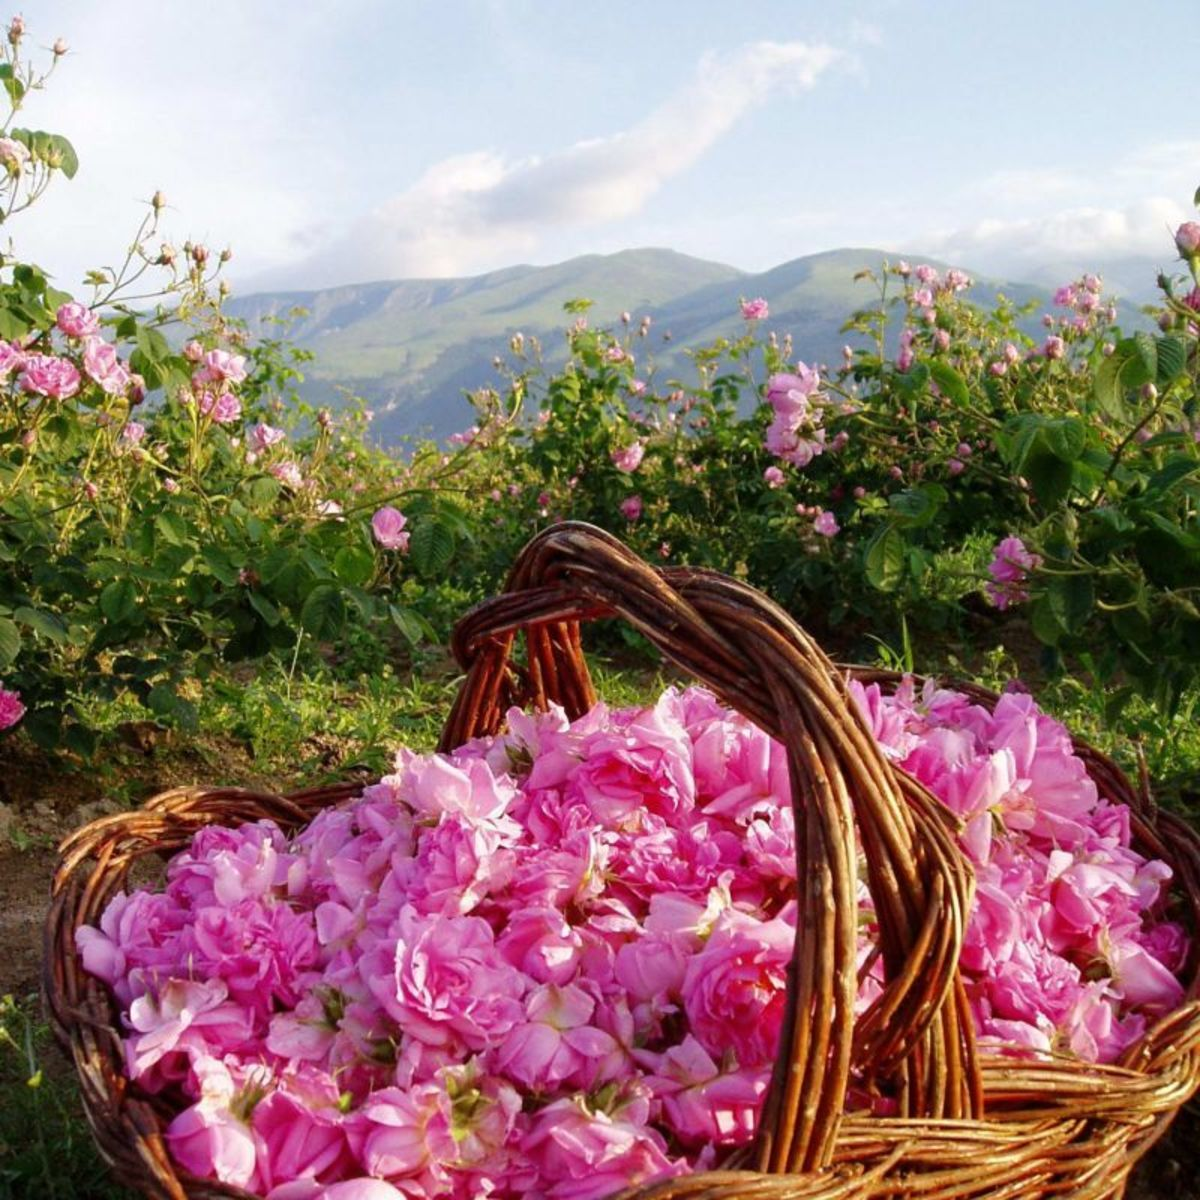 The Valley of Roses in May